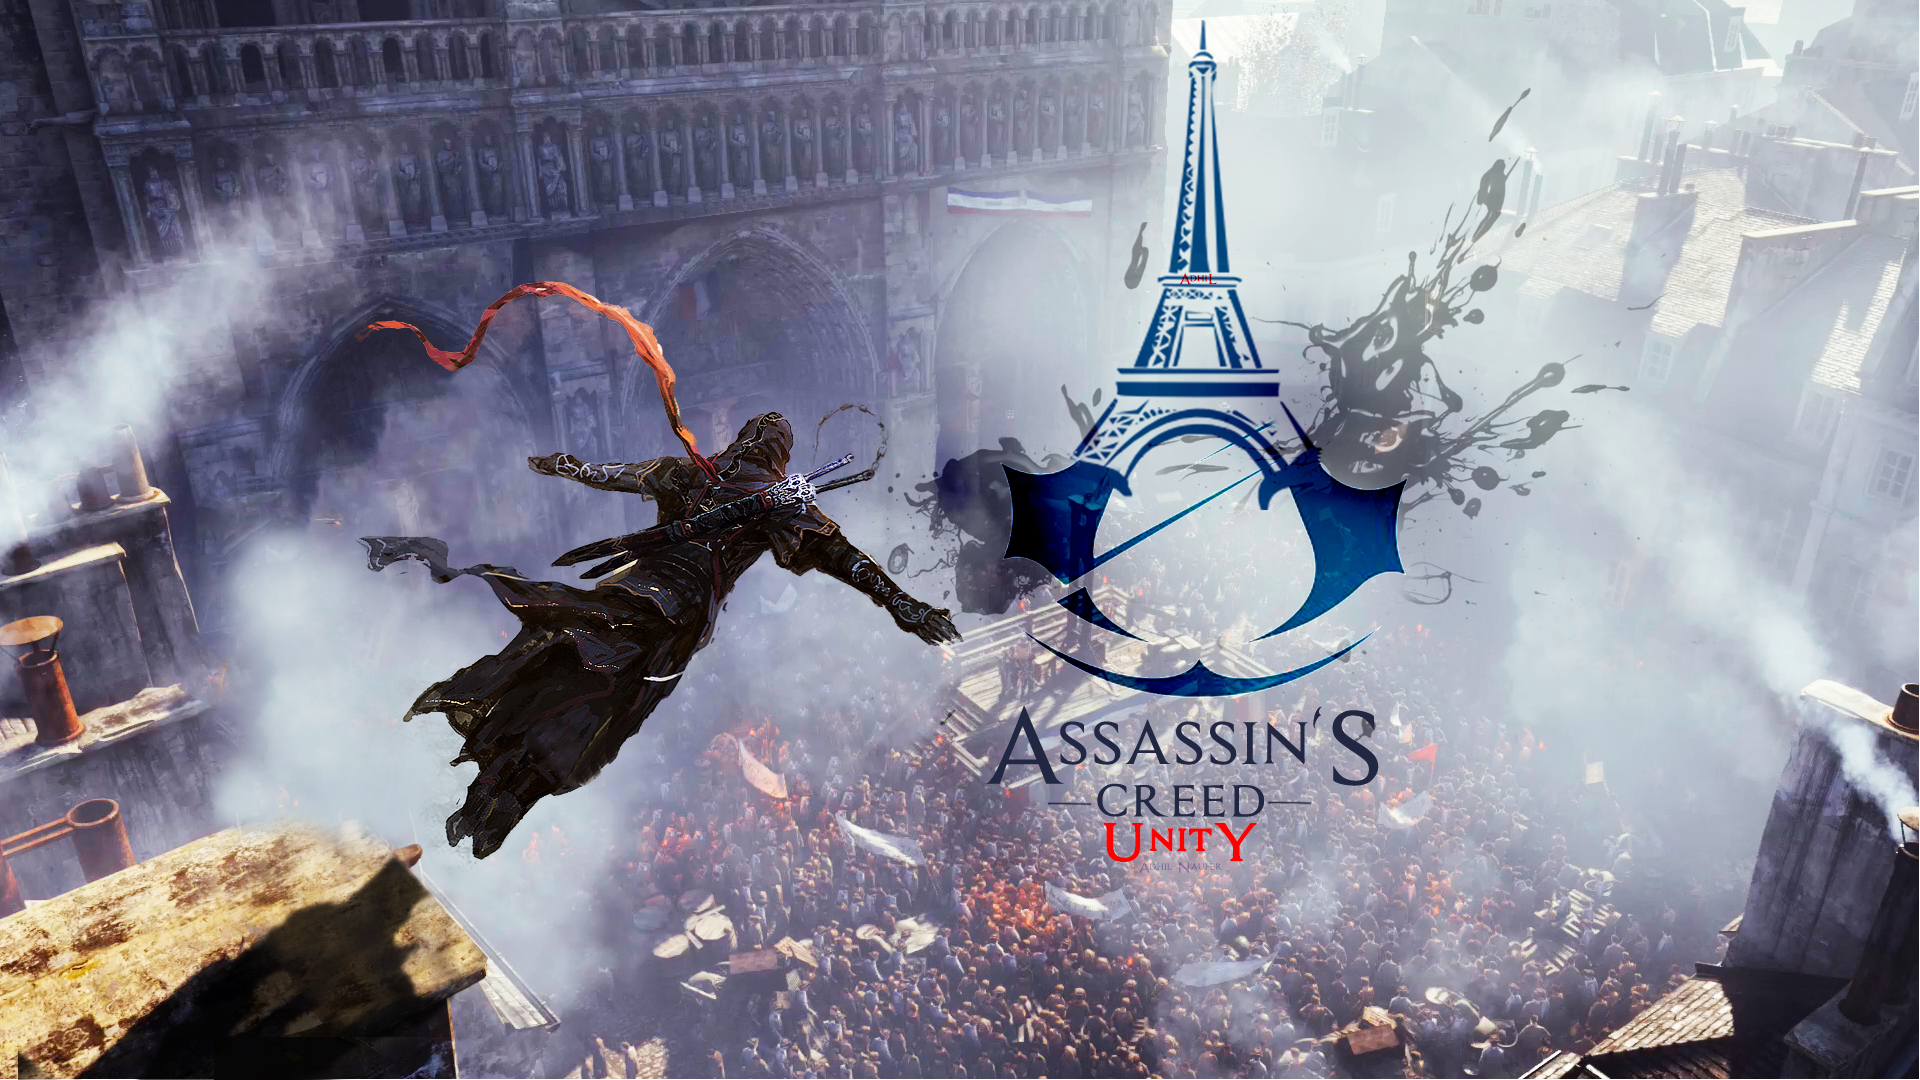 Assassins Creed Unity Hd Wallpaper 1920x1080 25266